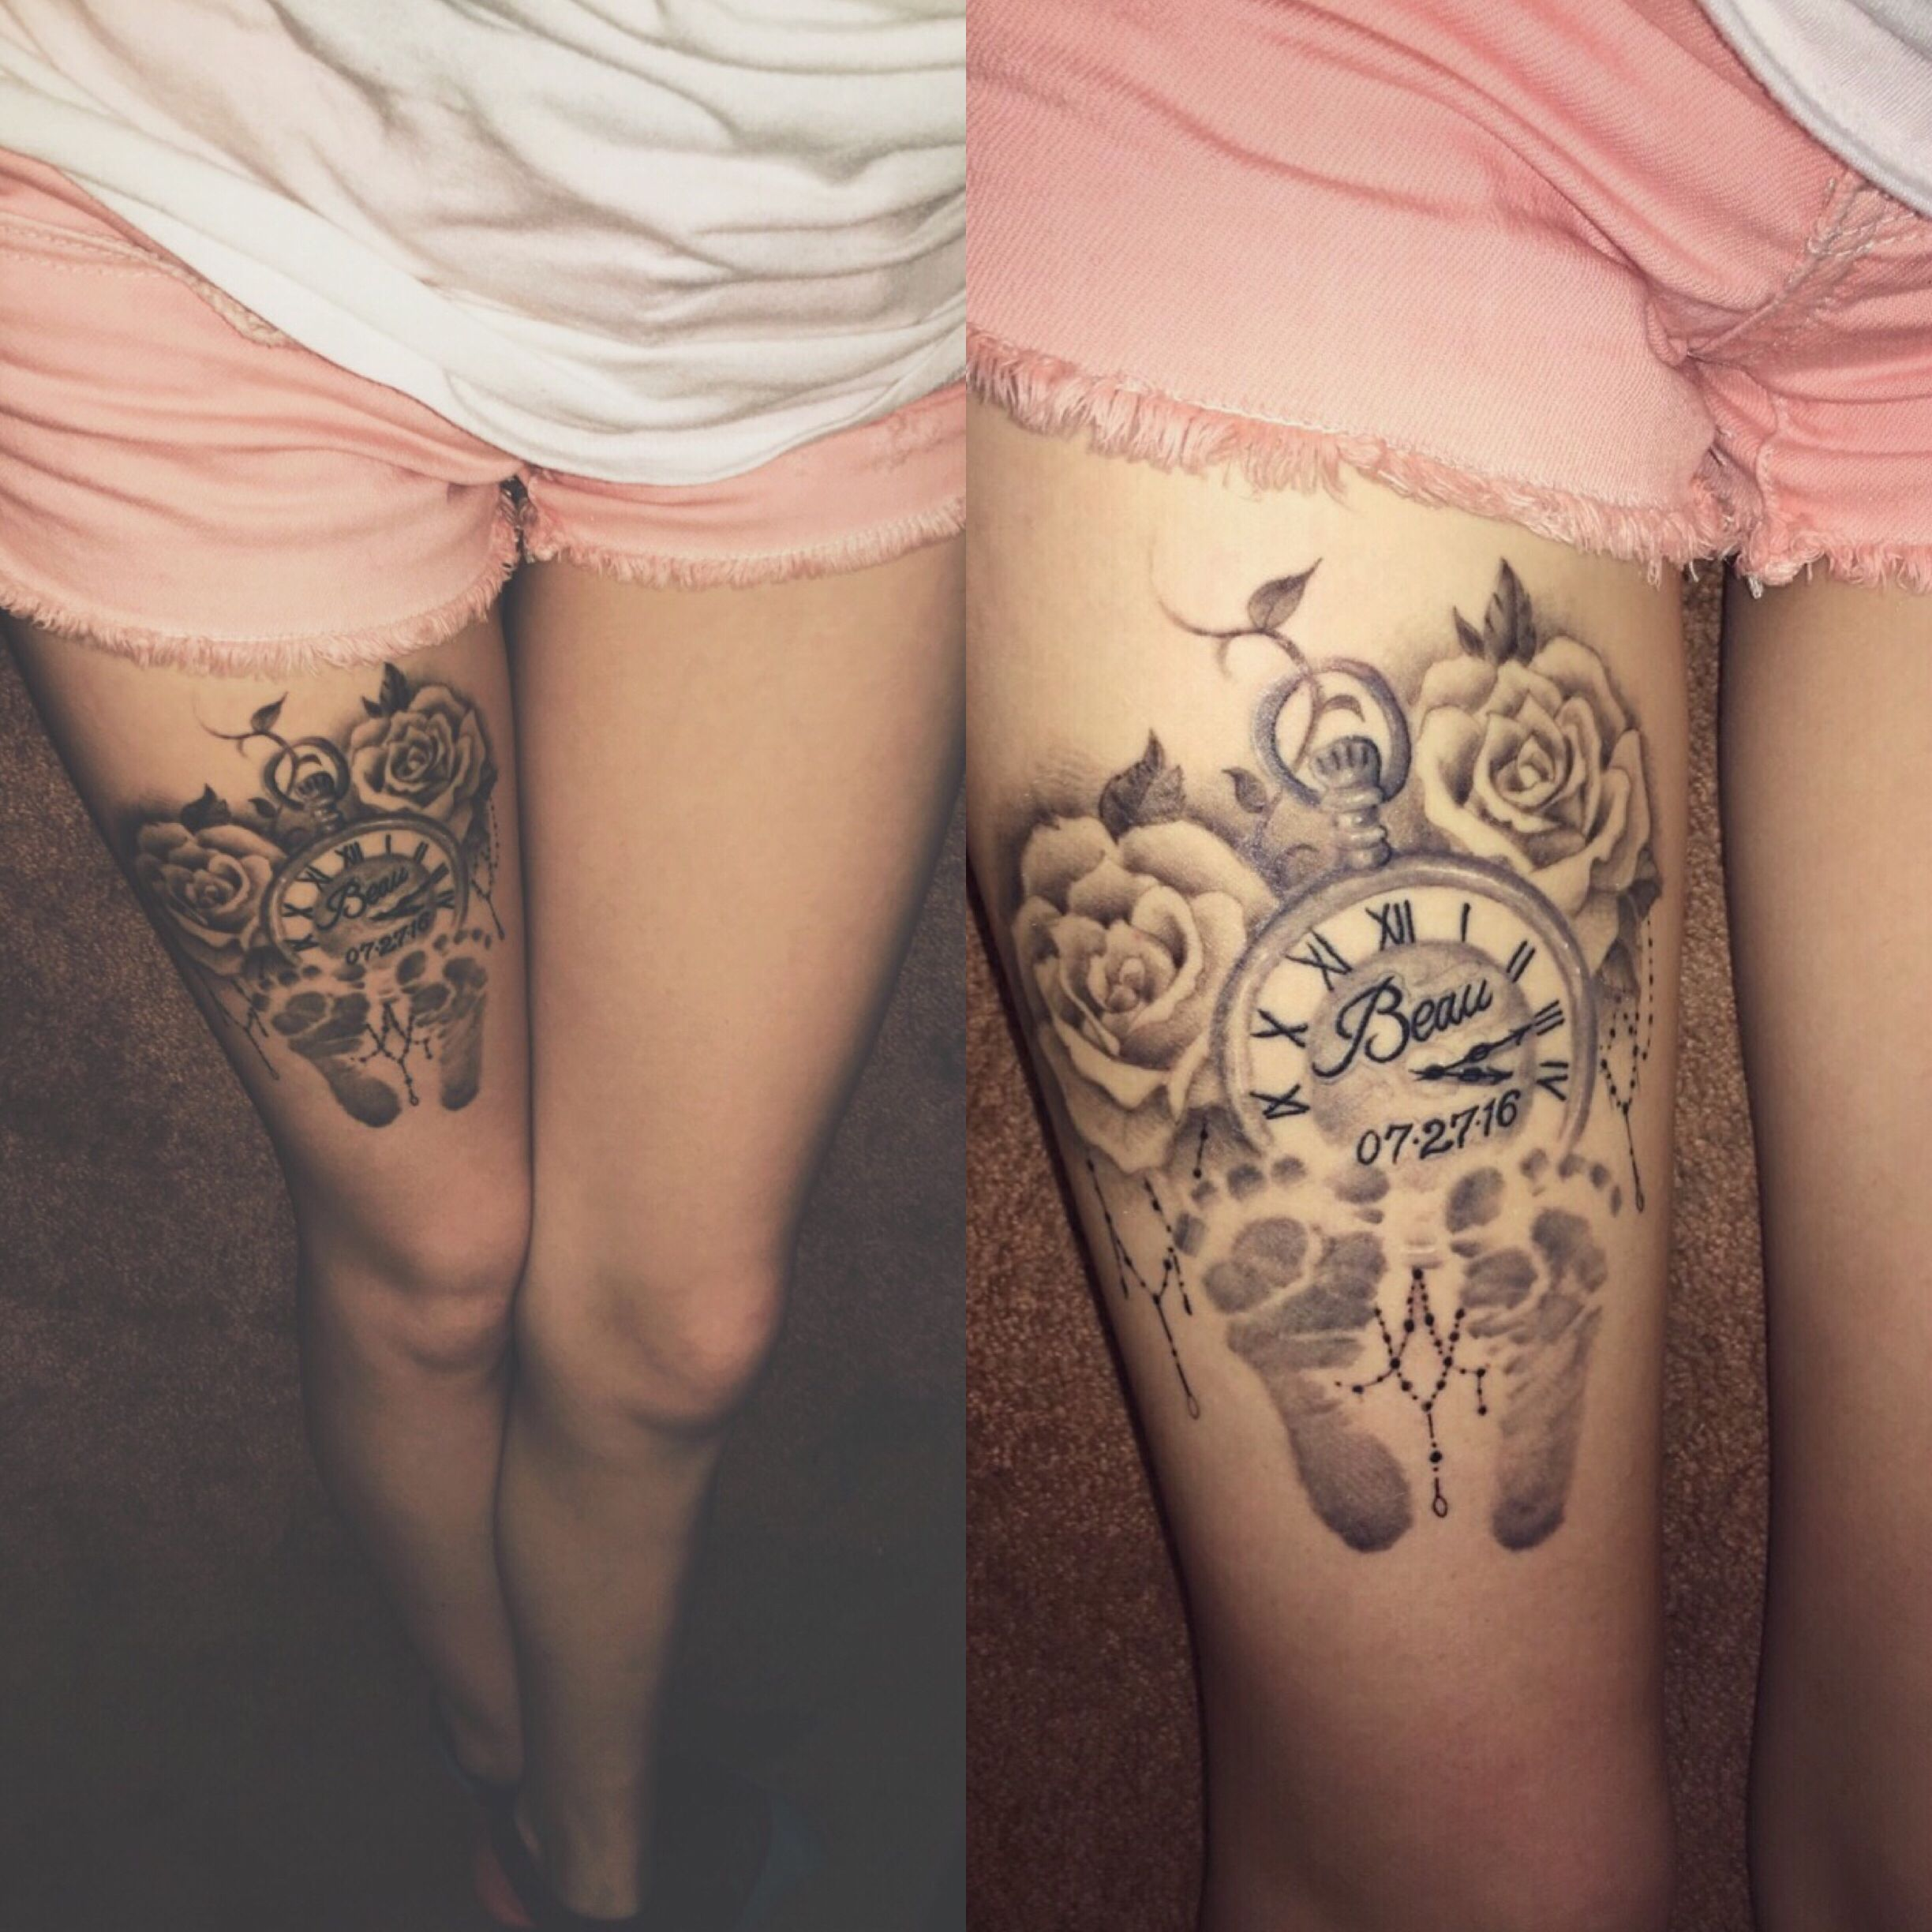 Roses, pocketwatch and baby footprints tattoo Tattoos